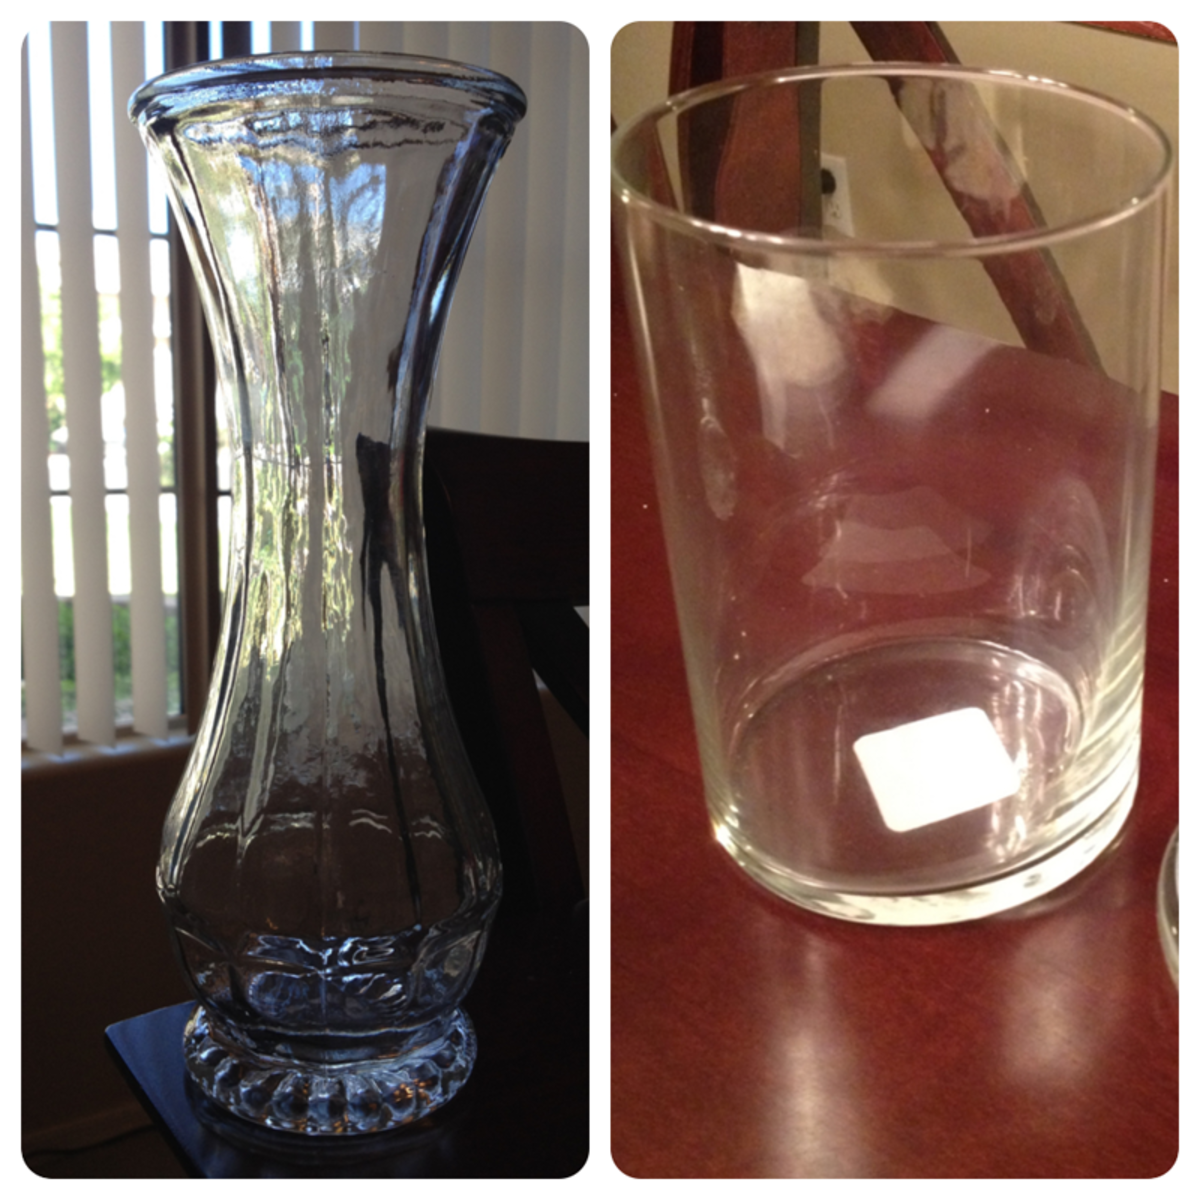 Vase from Goodwill and Libby jar from Michael's